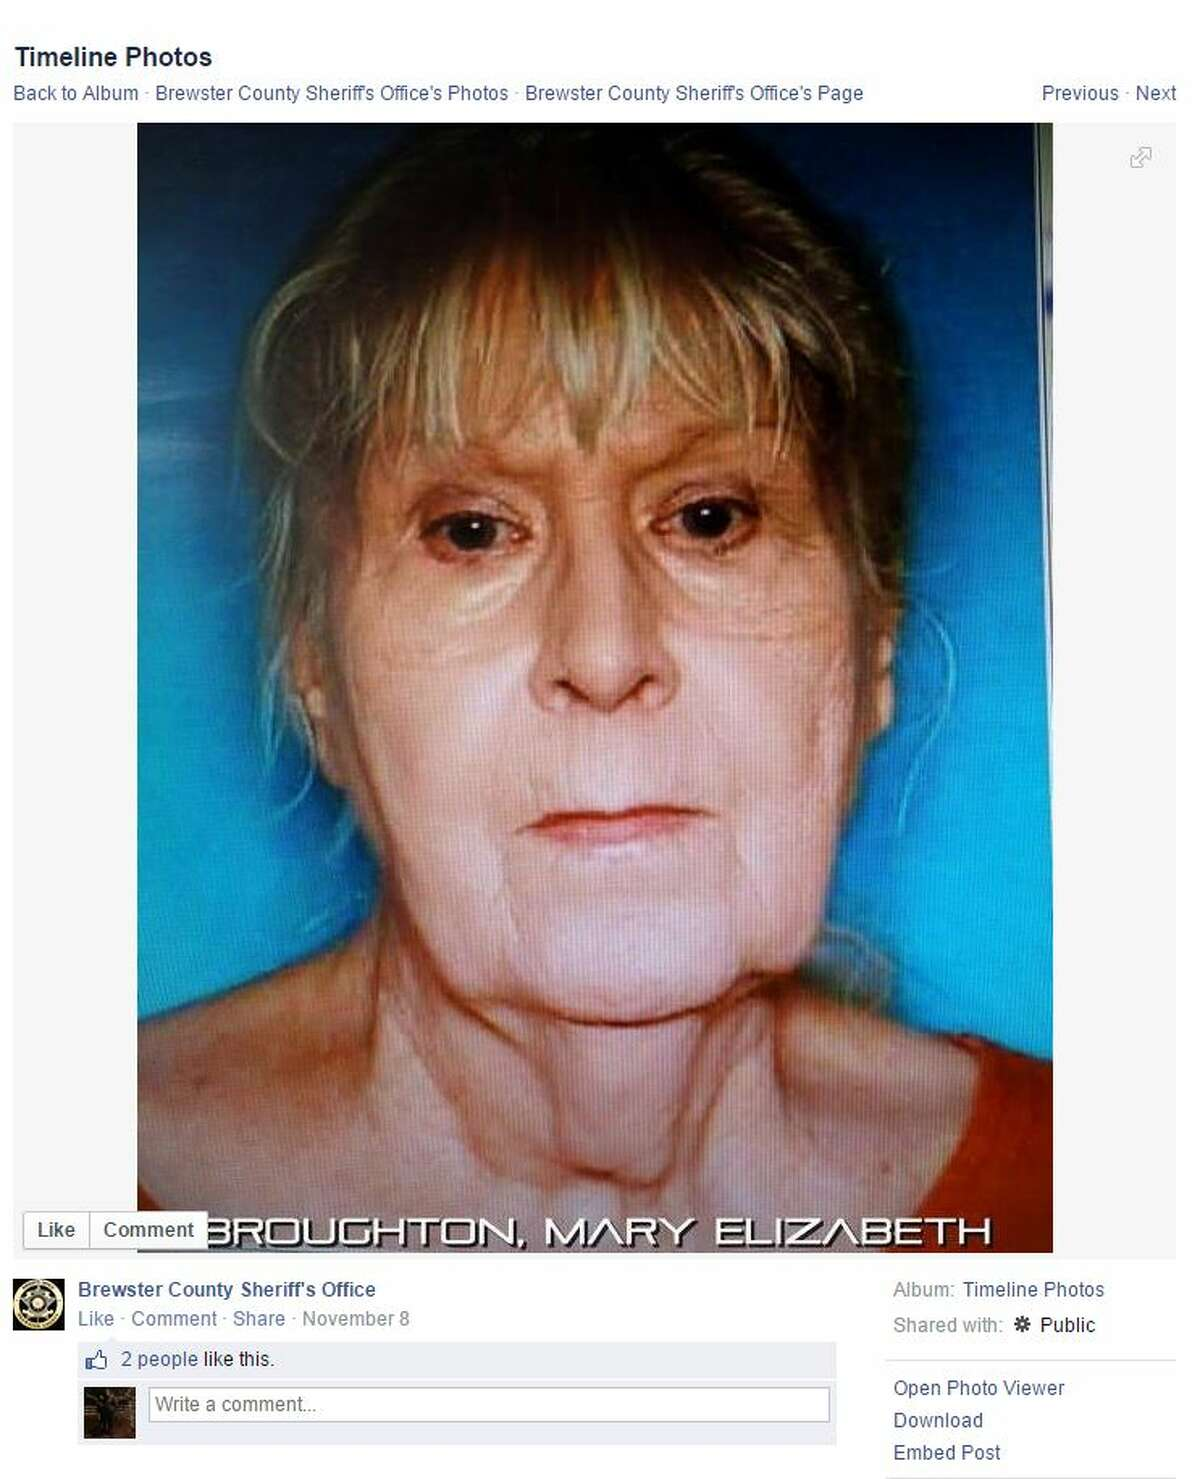 Police have found the body of a missing Terlingua woman whose daughter was sentenced to 10 years in prison for hiding her father's body in a Kentucky storage unit for 24 years and using his Social Security benefits. Officers found Judith Broughton's remains in a blue tarp hidden underneath the kitchen floor in her daughter Mary Broughton's house, NewsWest9.com reported Wednesday.